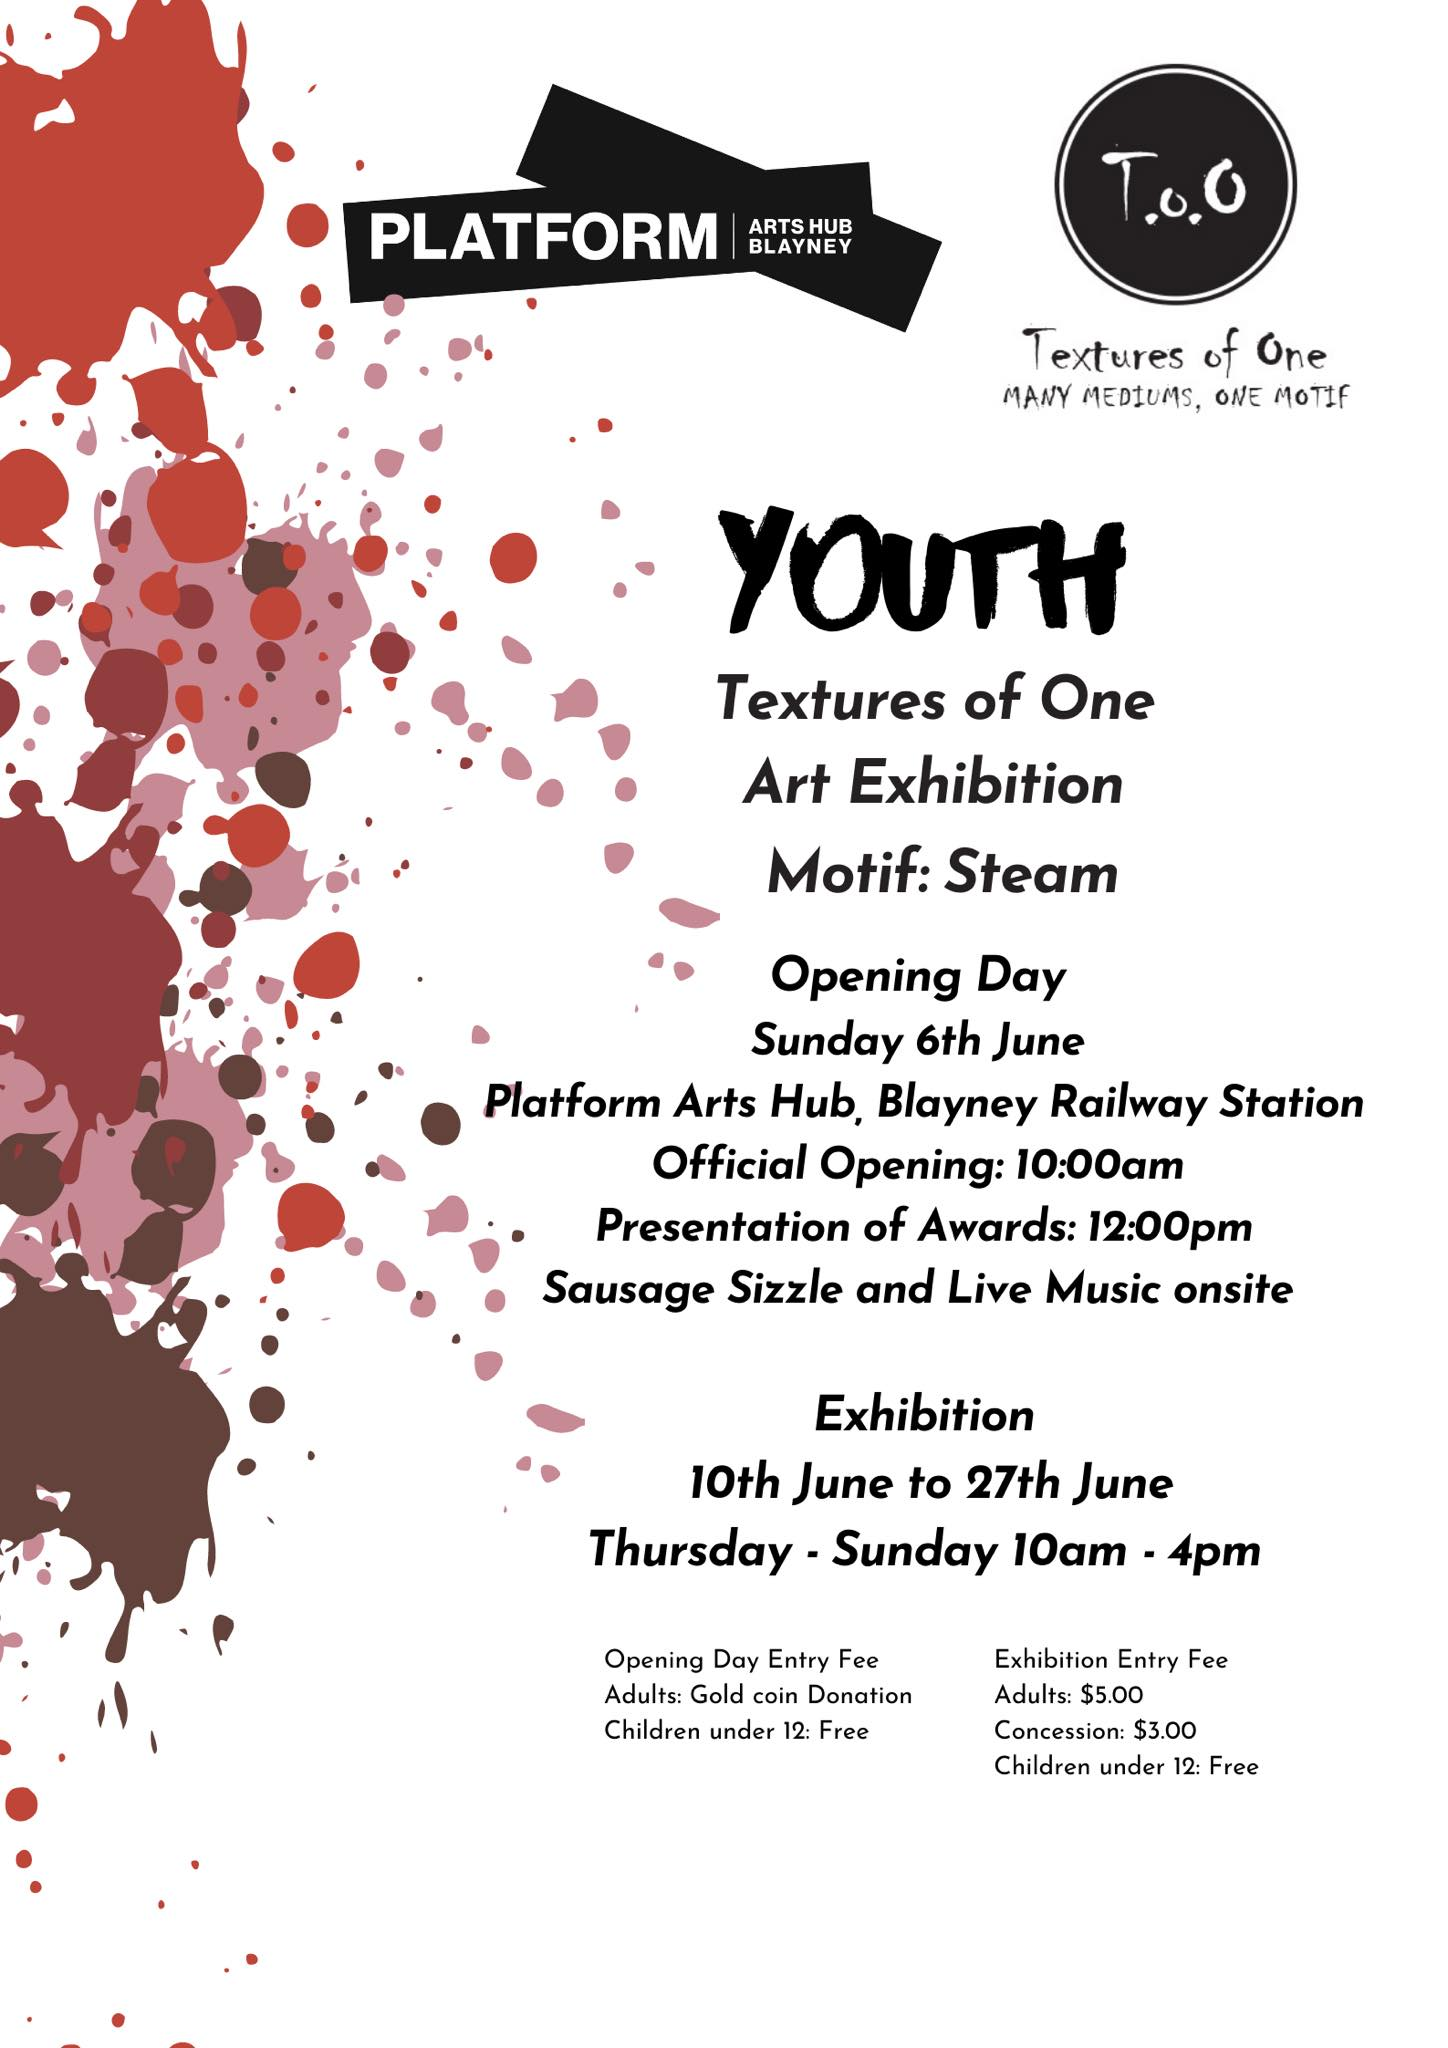 Poster for the Youth Textures of One exhibition. Details in text have been add to the text on this page.